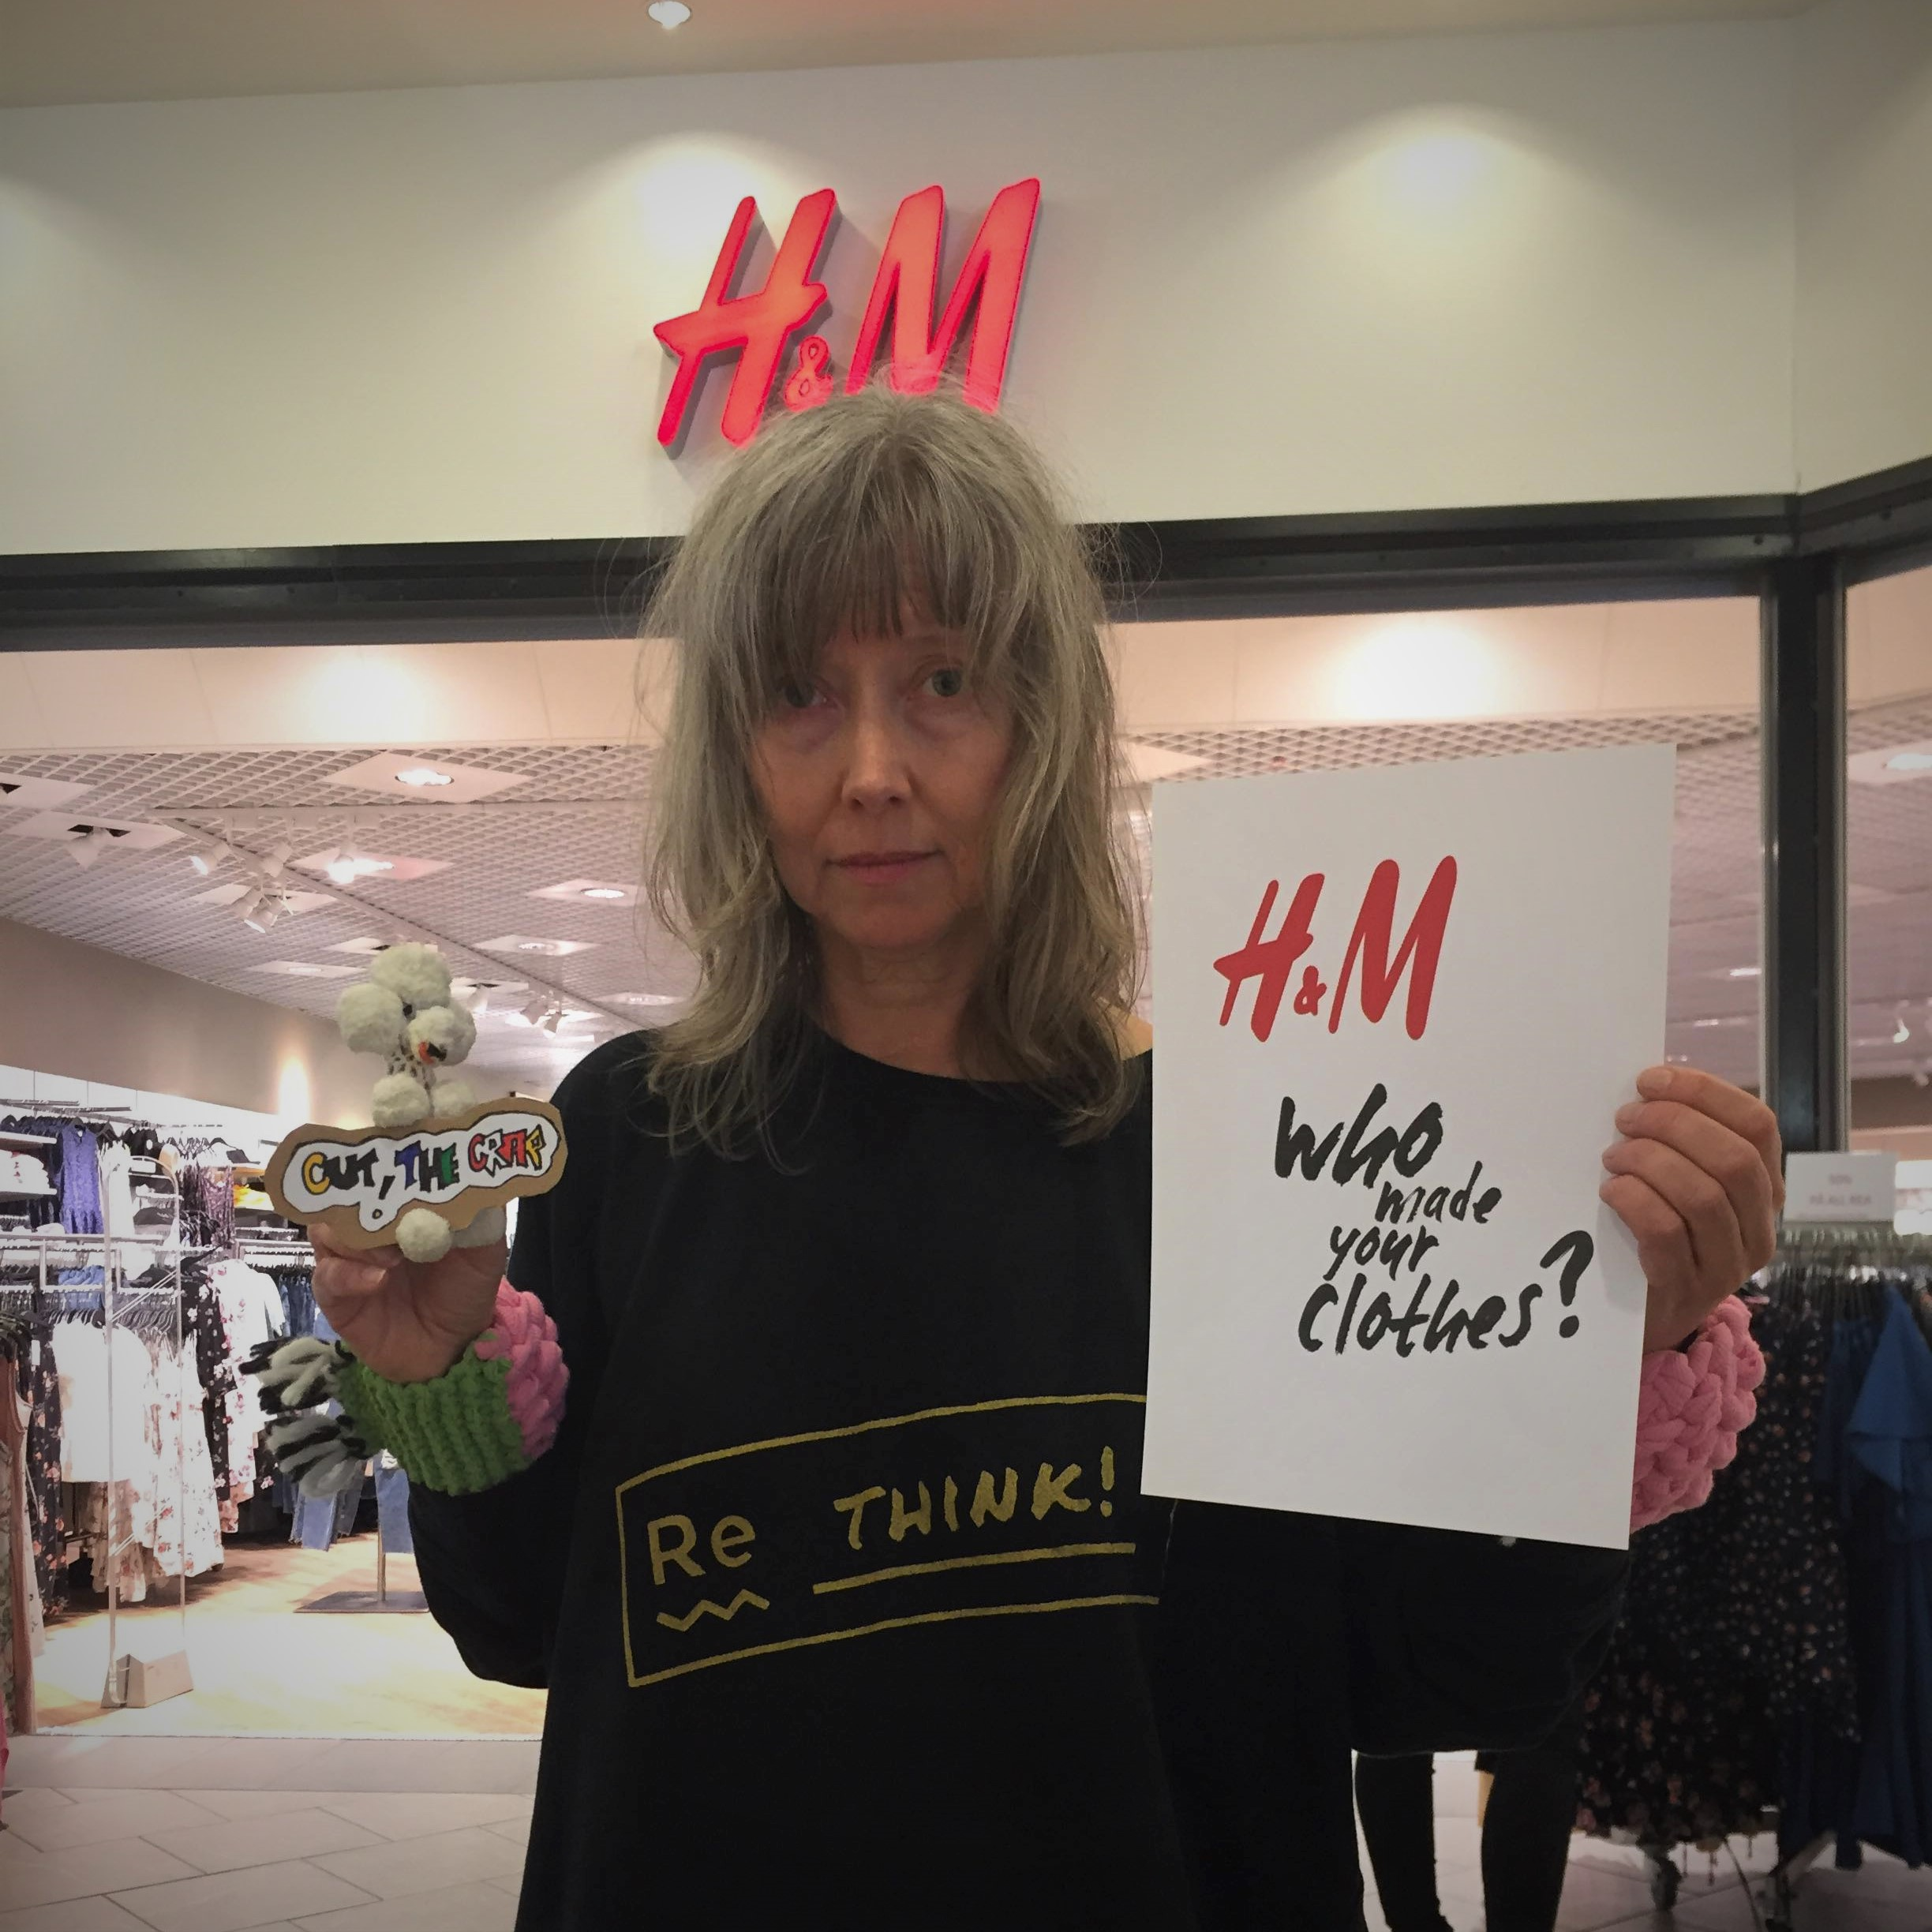 HM-whomadeyourclothes1.jpg